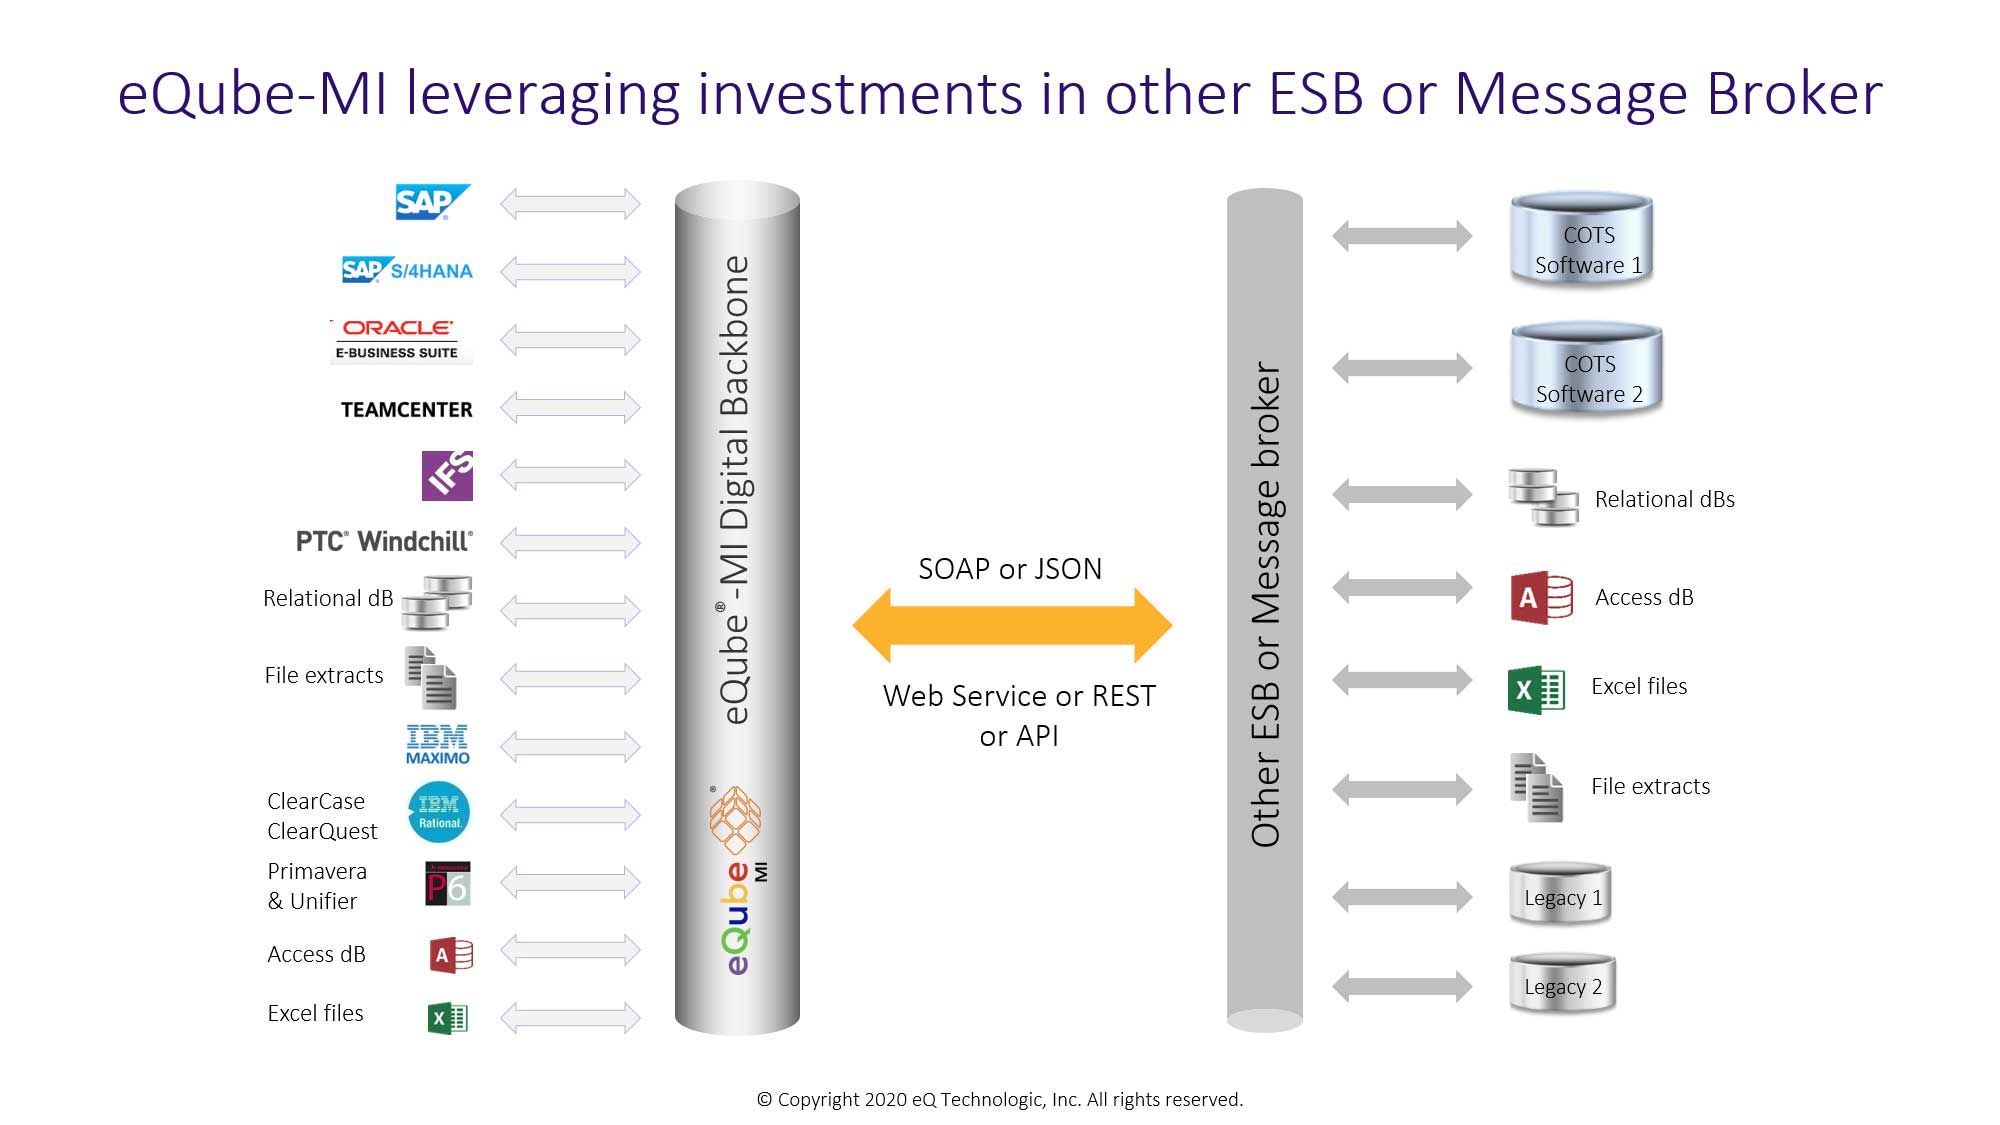 eQube-MI leveraging investments in other ESB or Message Broker